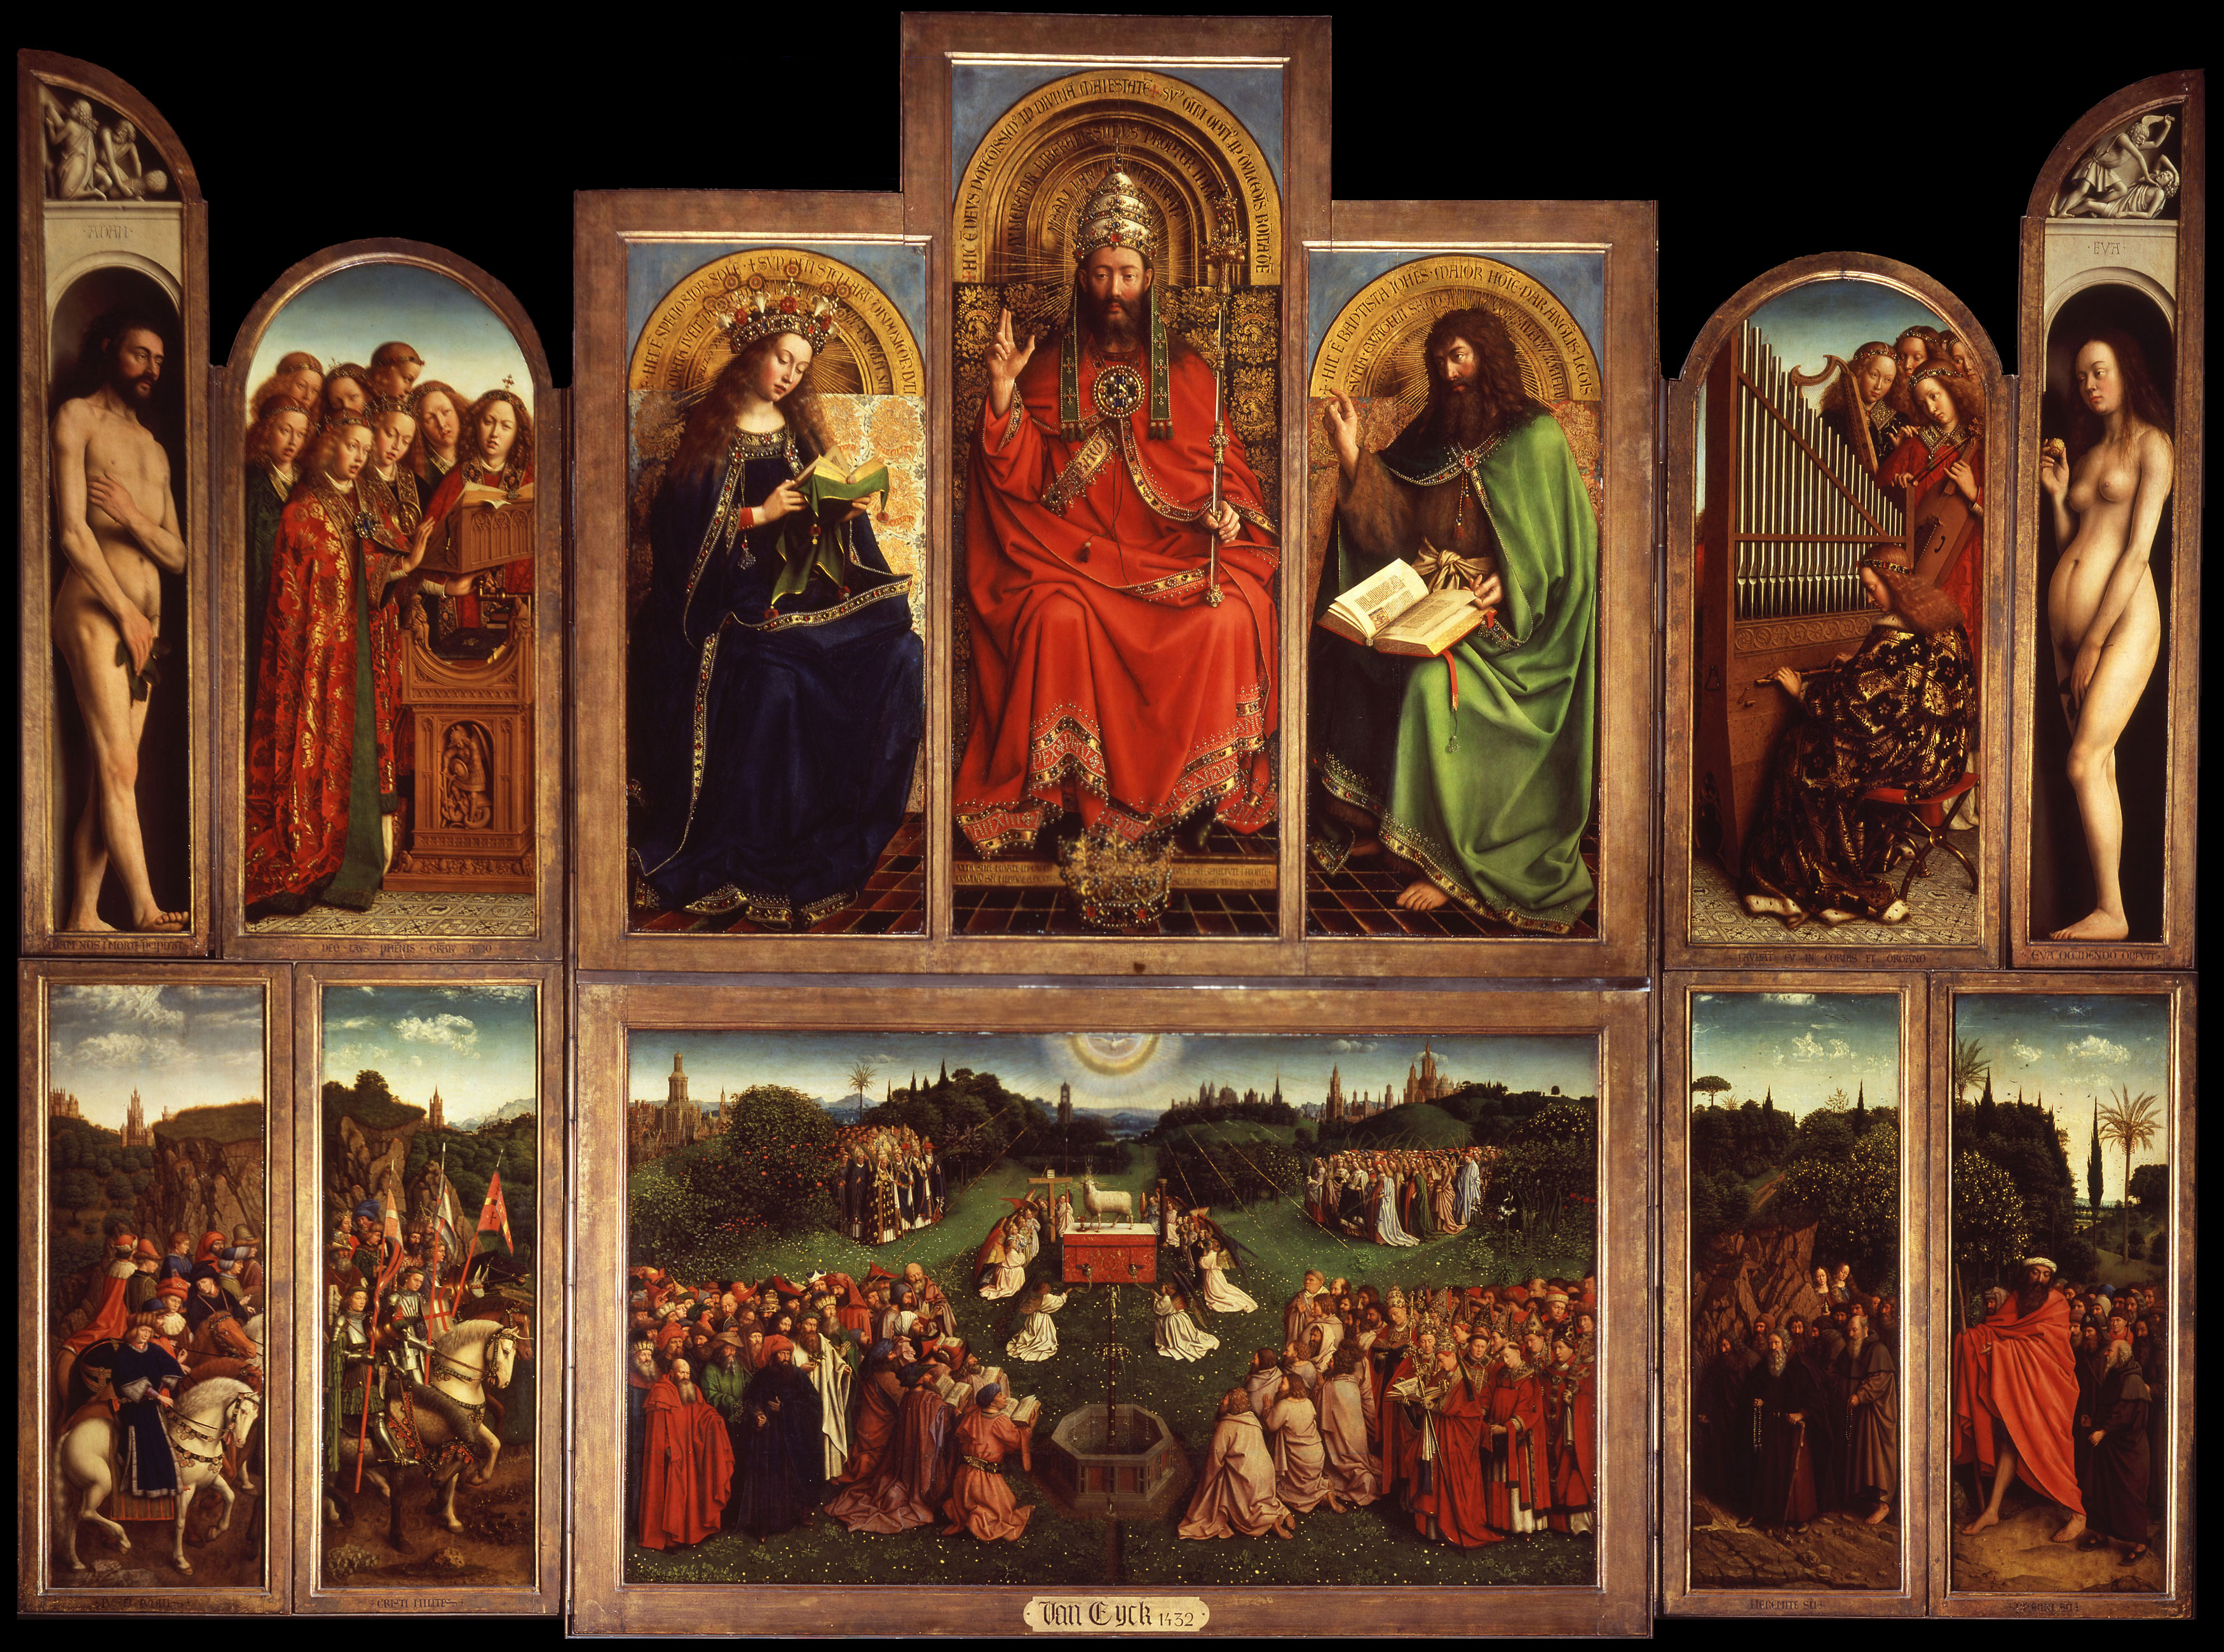 Ghent Altarpiece - most famous painting